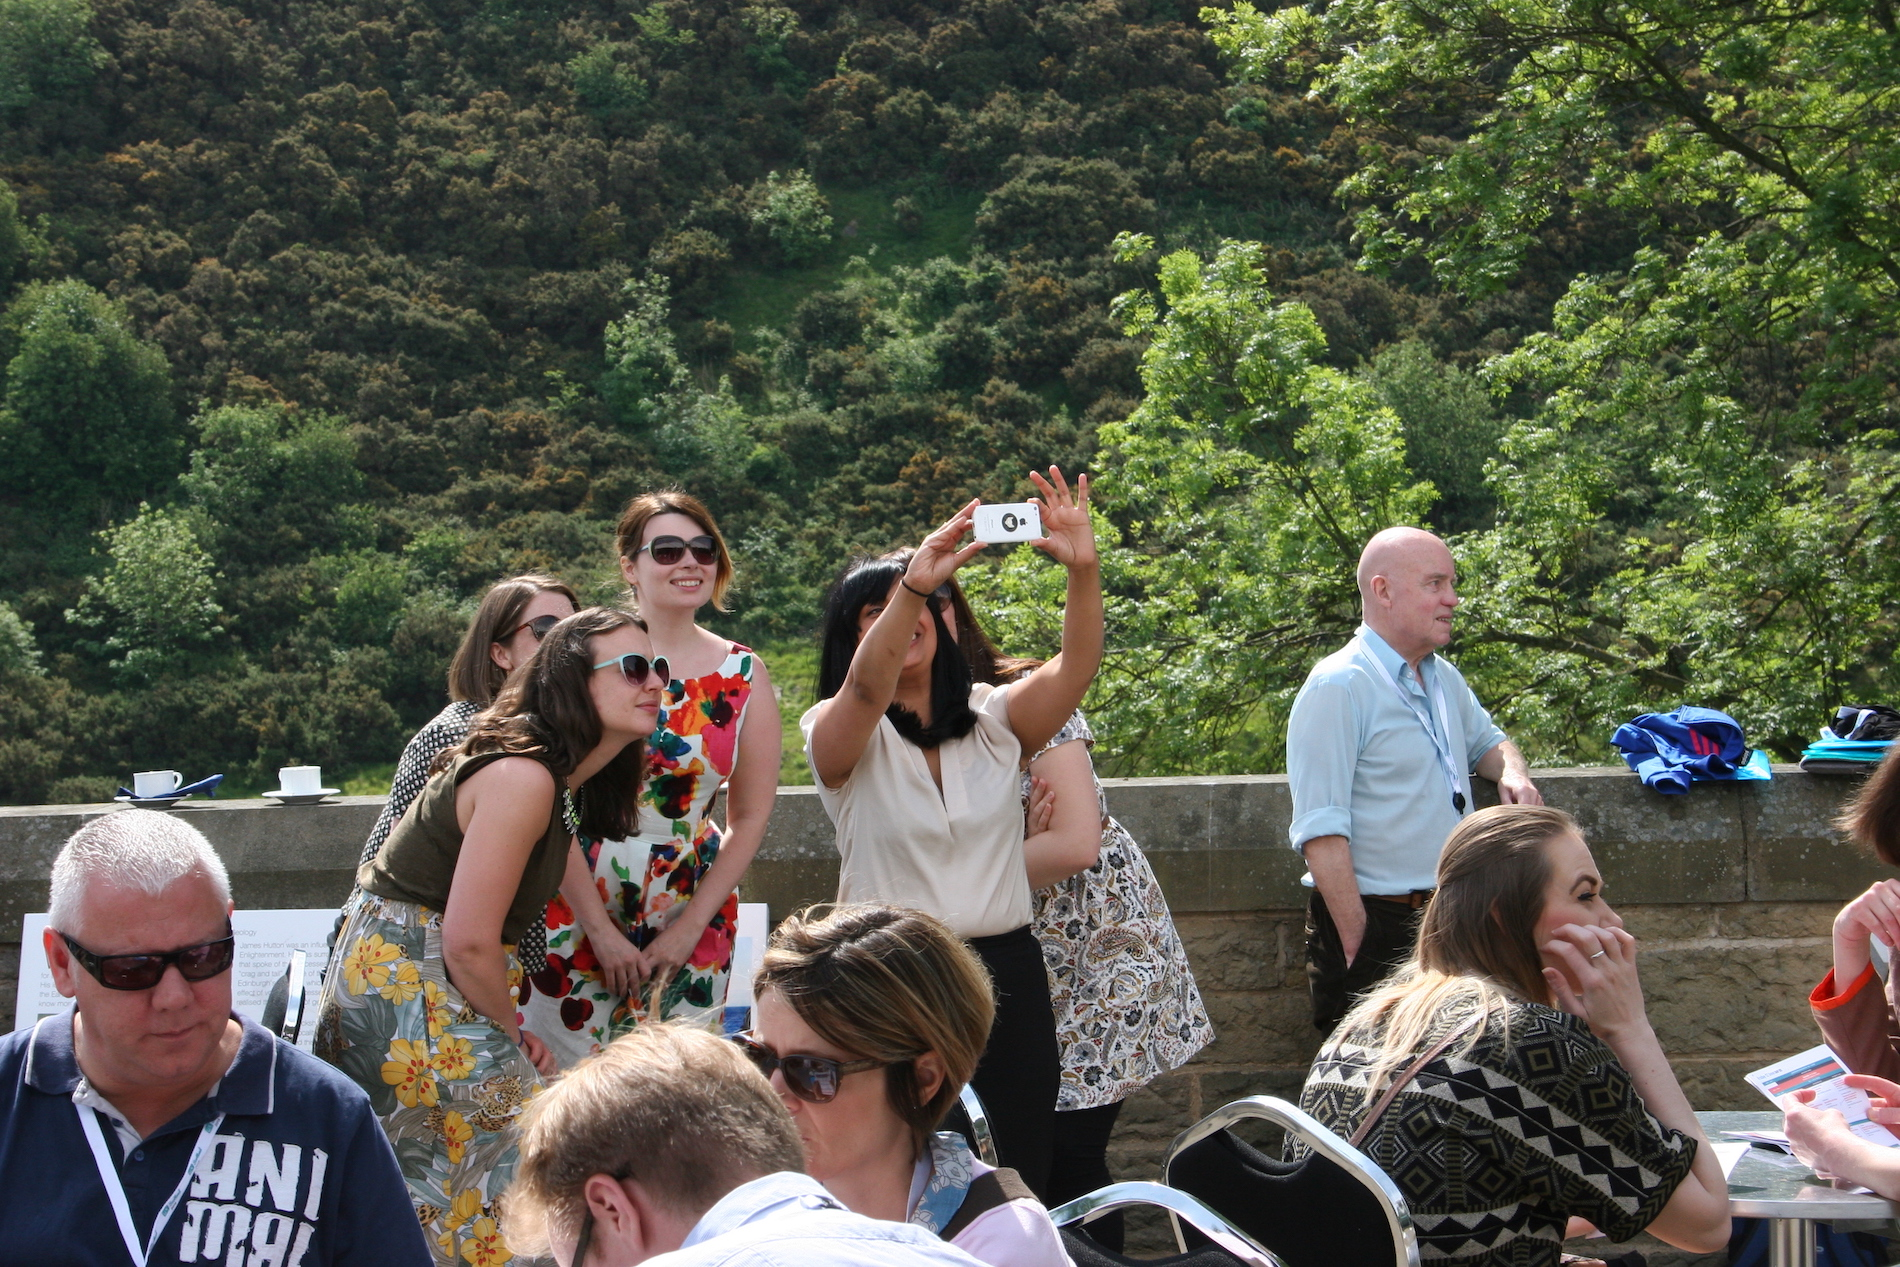 Participants taking a group selfie in the sunshine on the balcony at Dynamic Earth.